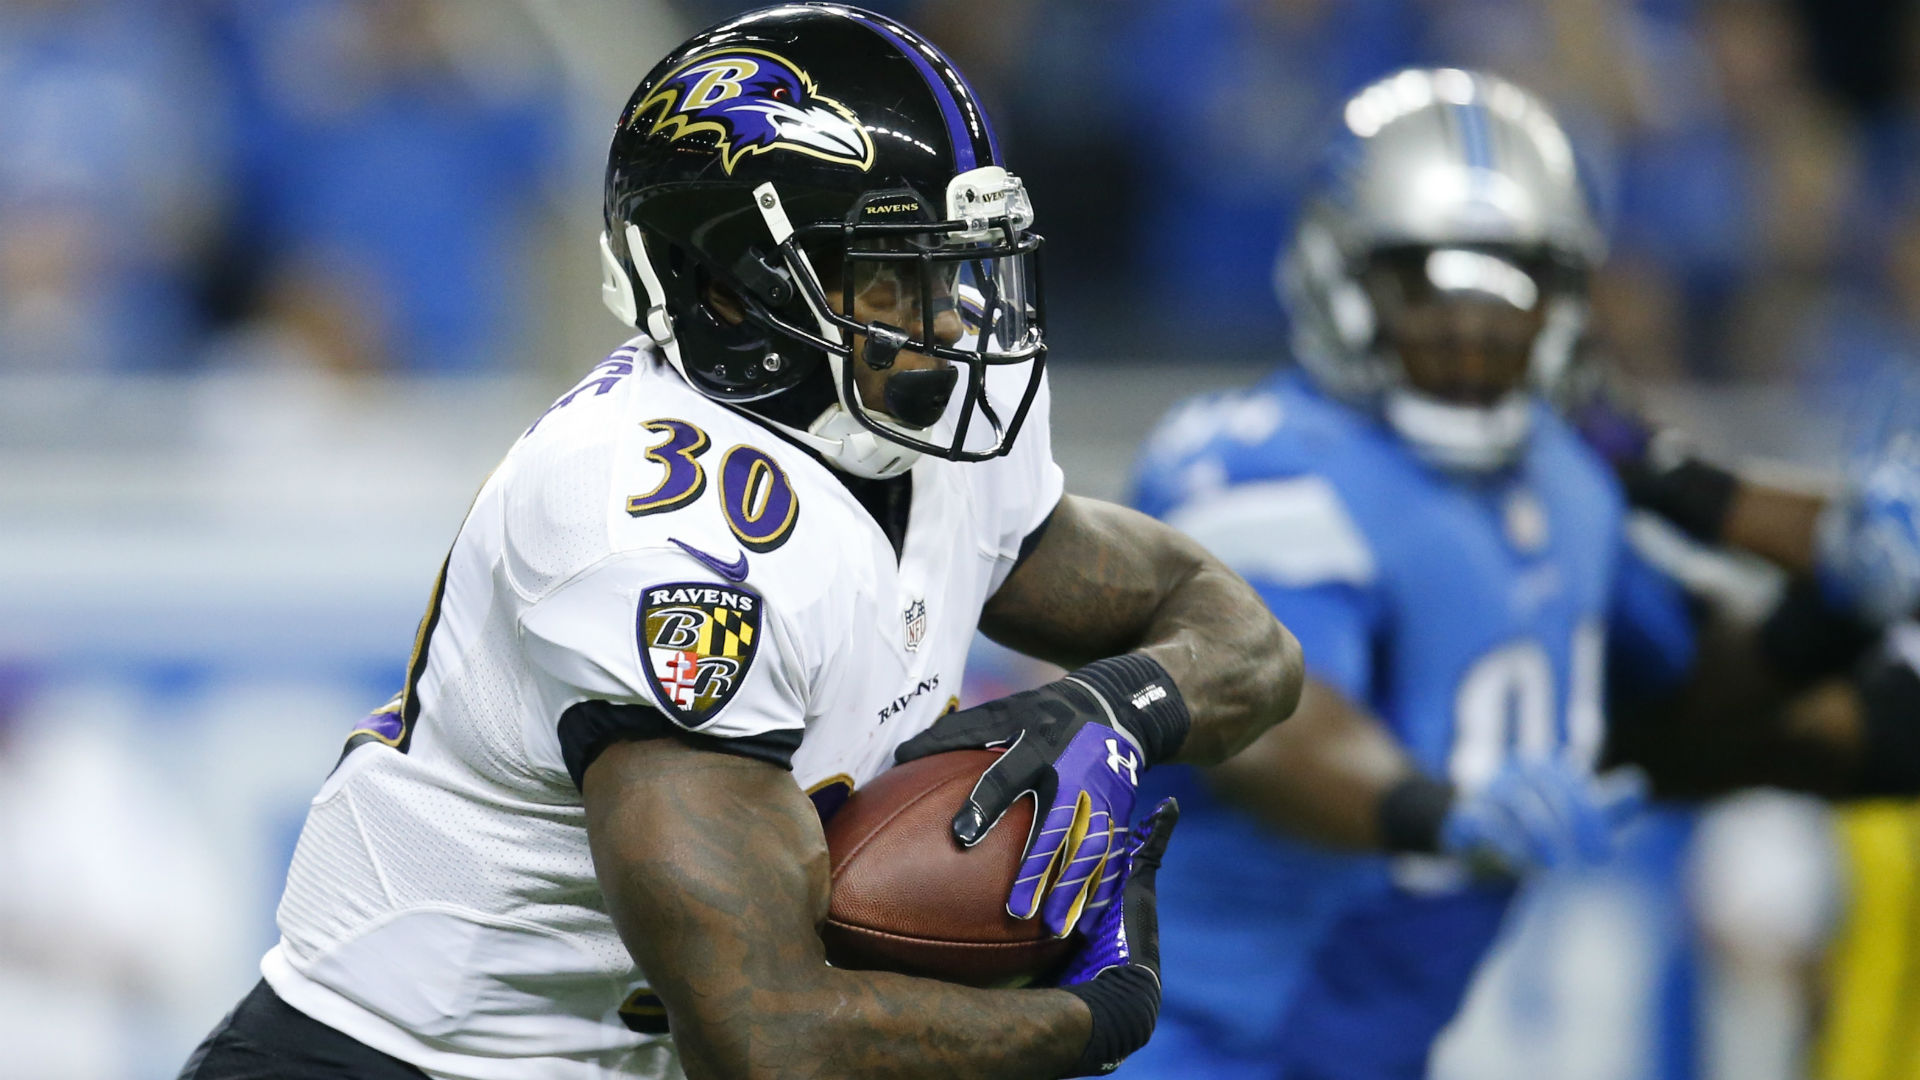 Fantasy football sleepers: Is Bernard Pierce good?